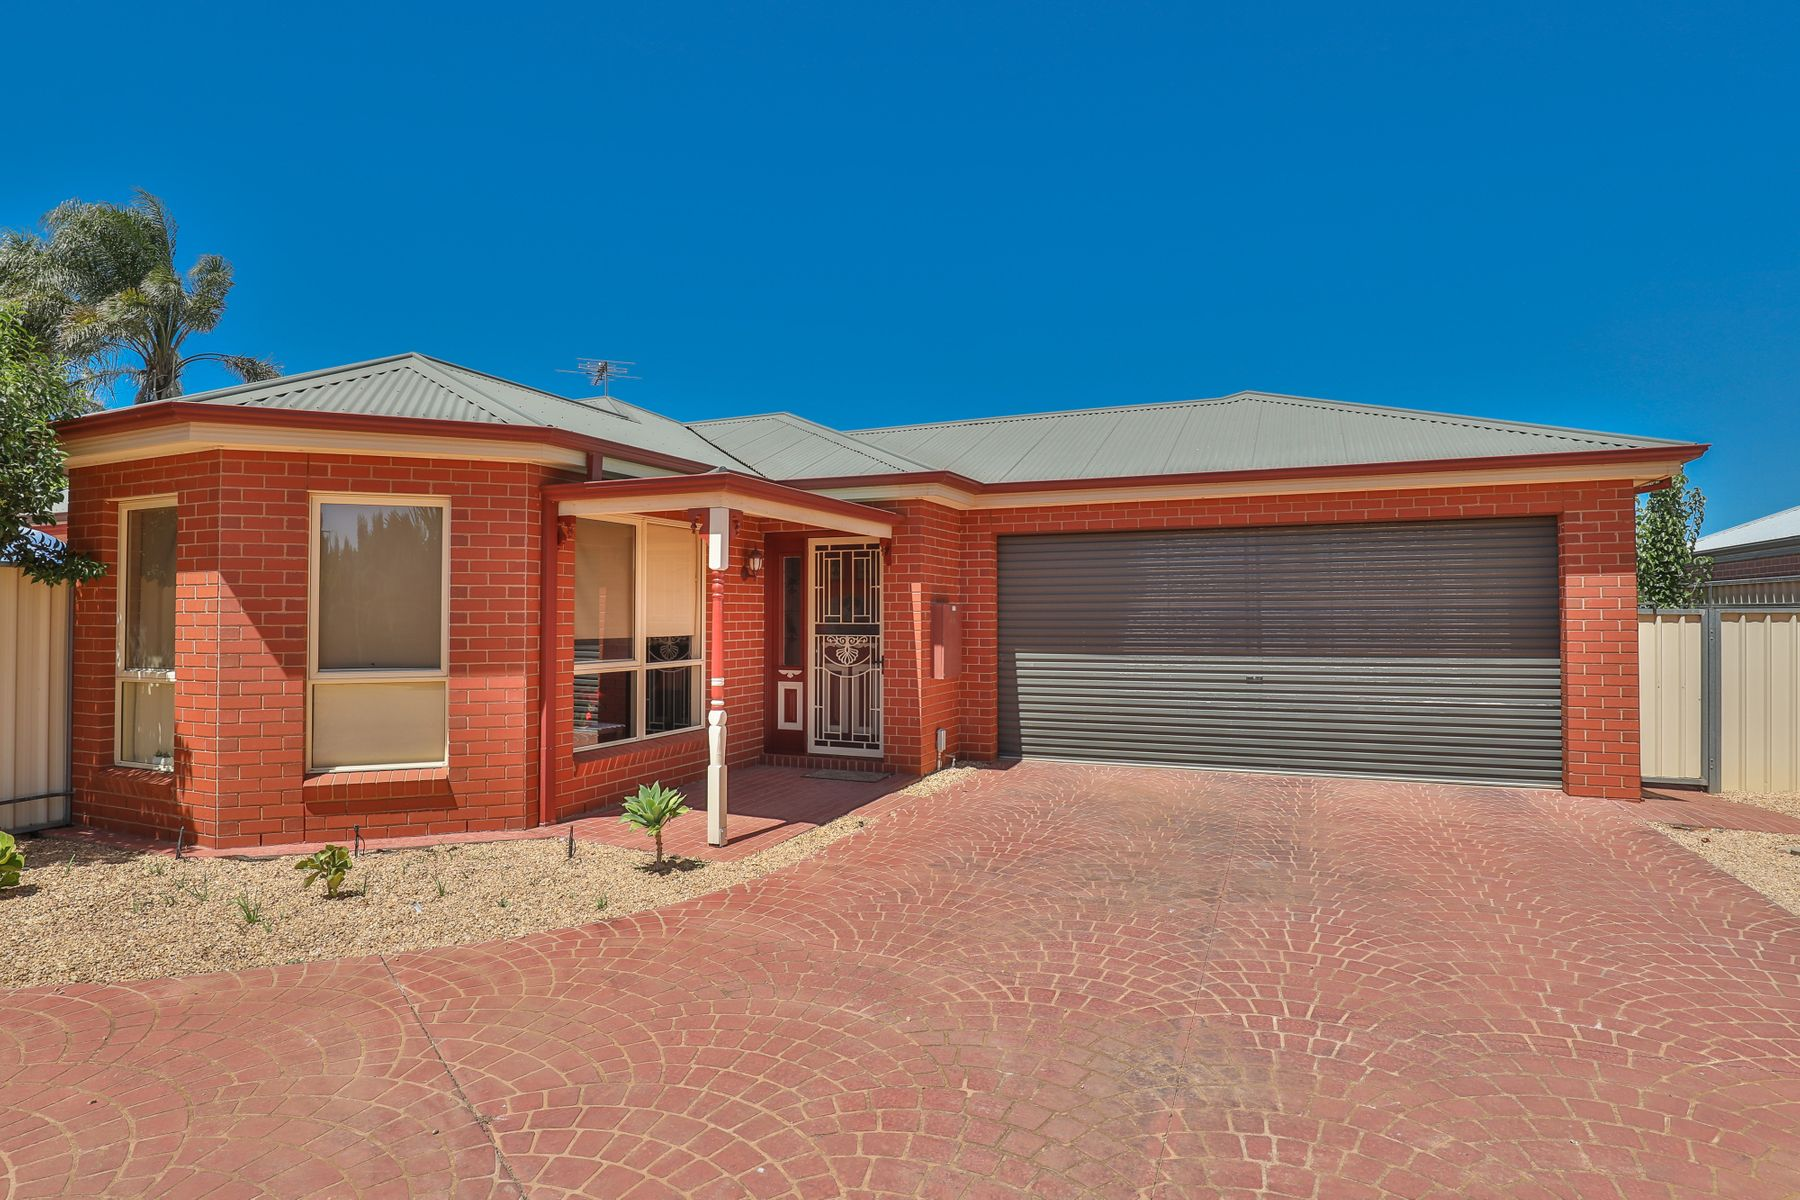 3/53 Belleview Drive, Irymple, VIC 3498